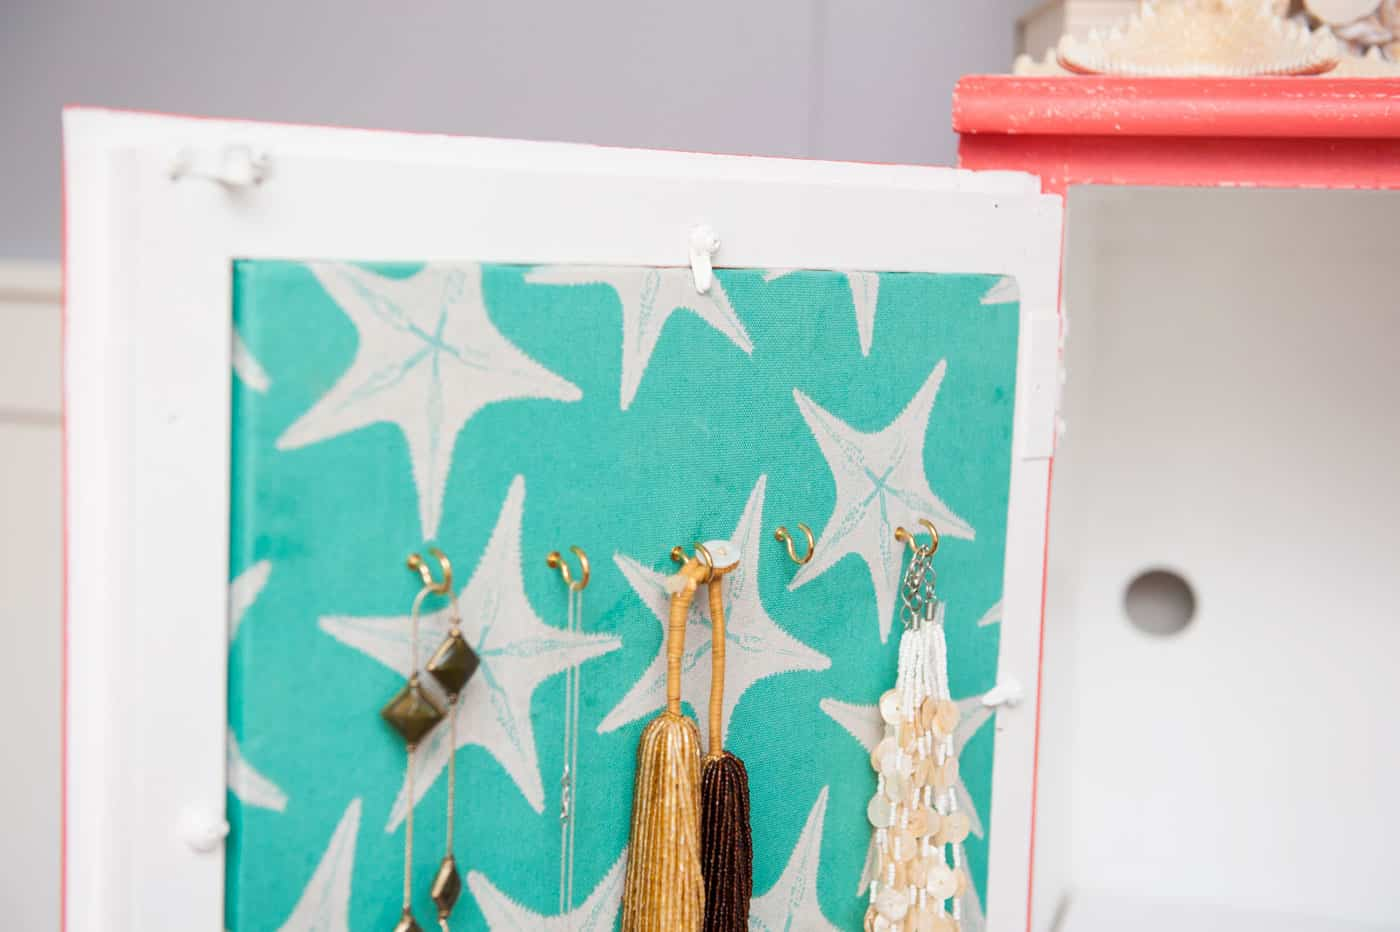 Courtney revamped her bathroom cabinet with pretty paint colors - and turned the inside into a cork board jewelry organizer with Mod Podge and fabric!